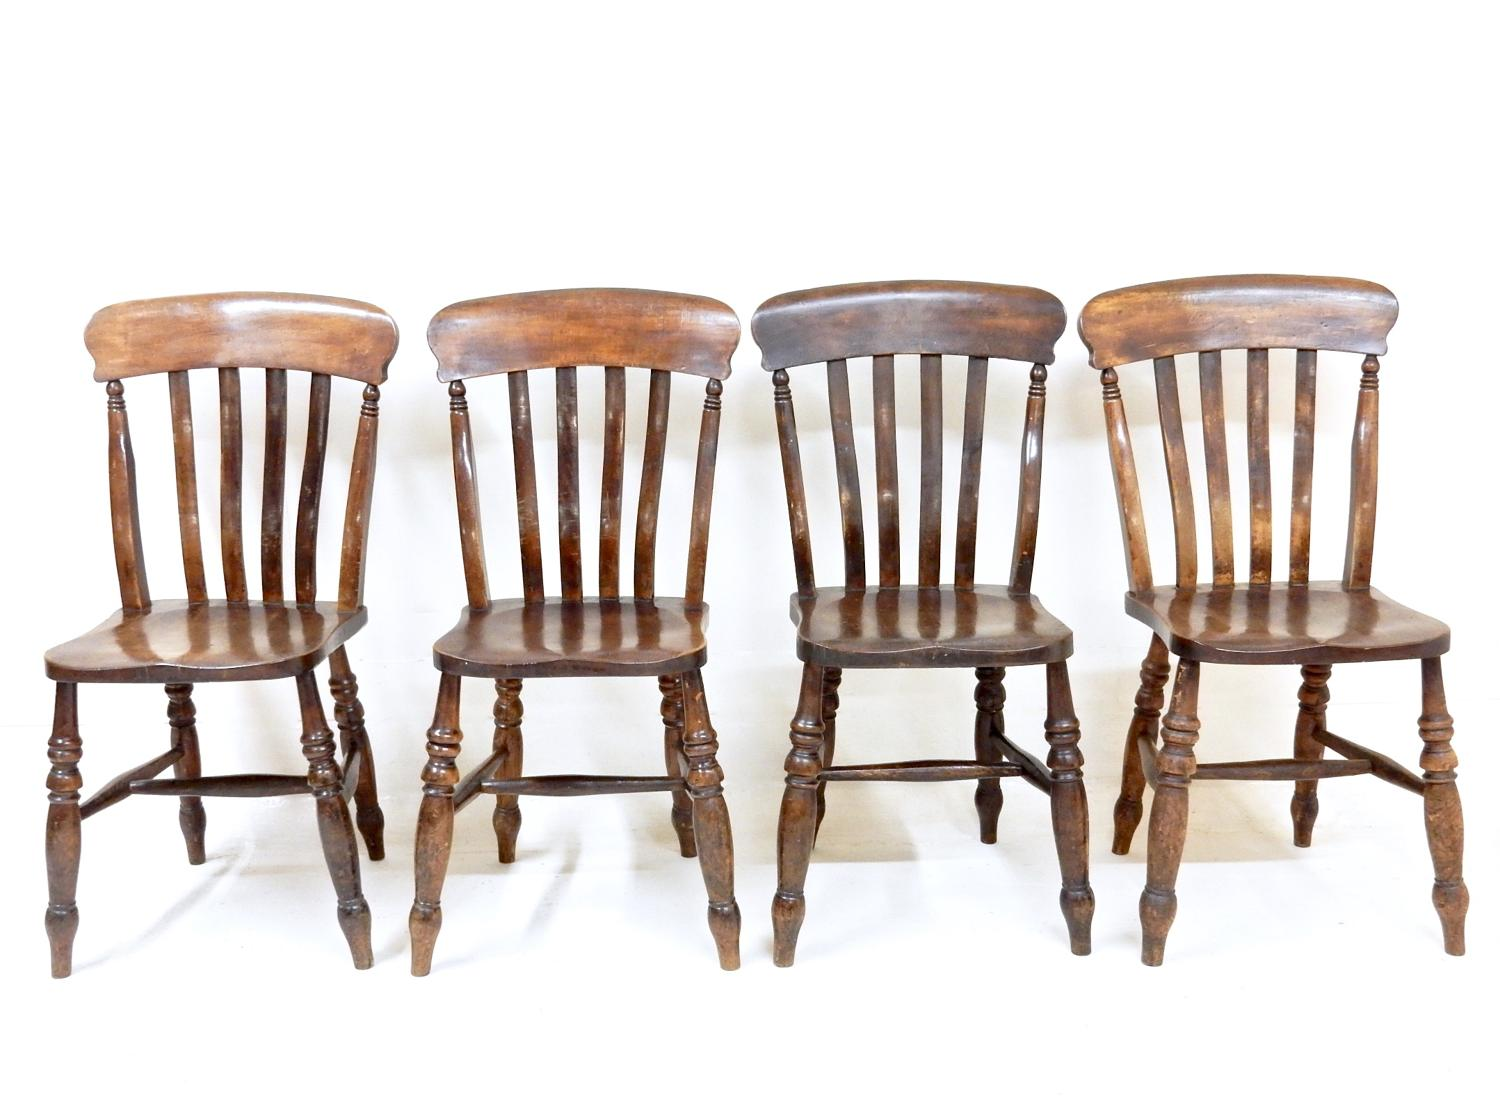 Antique Oak Kitchen Chairs